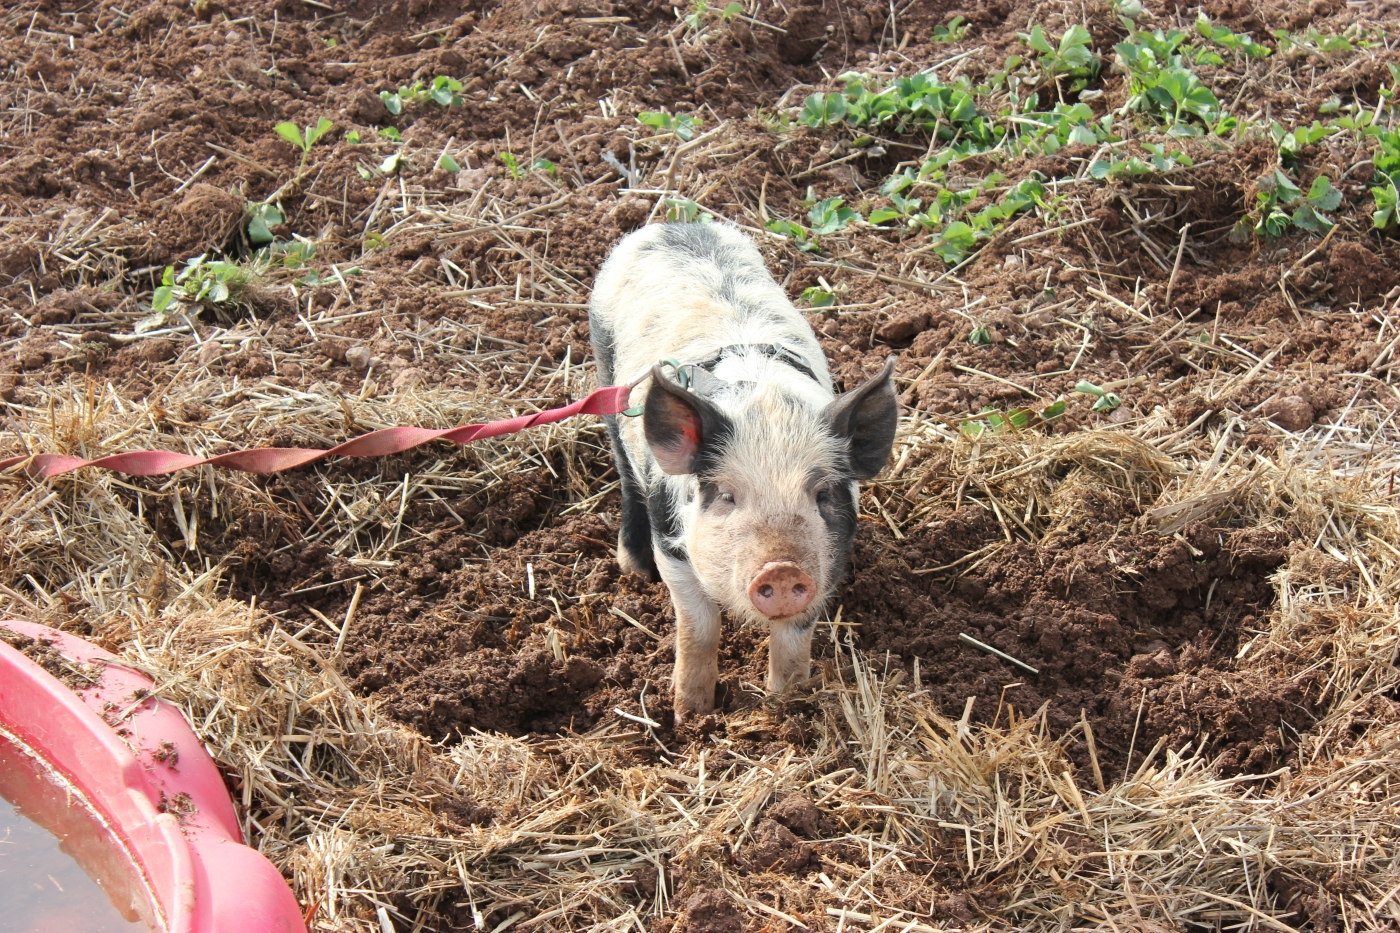 The Post Apocalyptic Permaculture Pig thumbnail